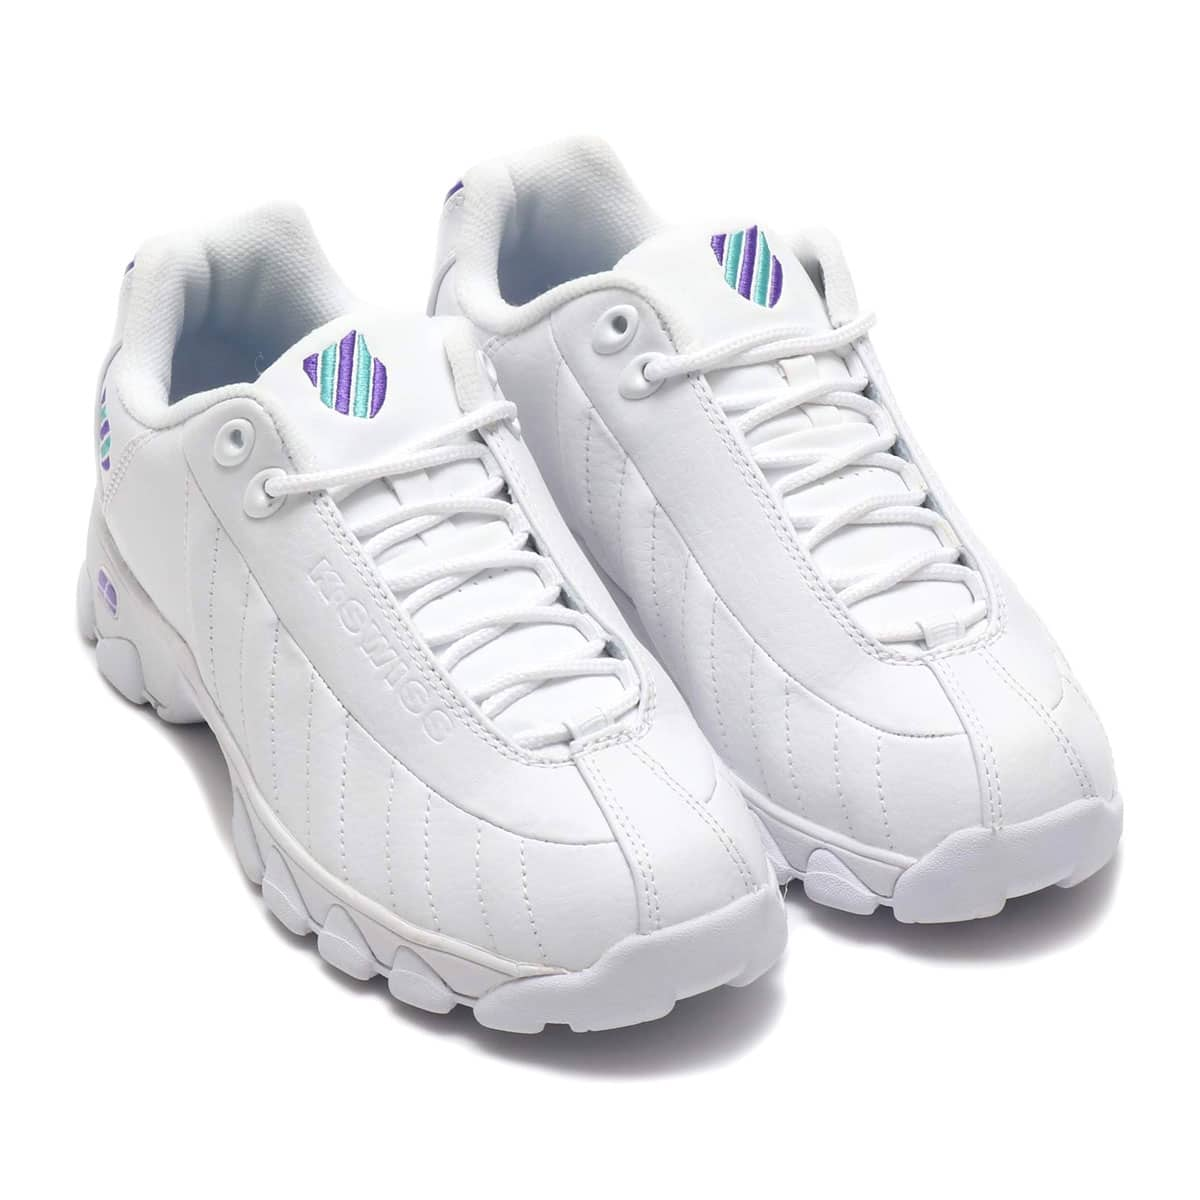 K-SWISS ST329 CMF W WHITE/ULTRA VIOLET/LAGOON 19SU-I_photo_large